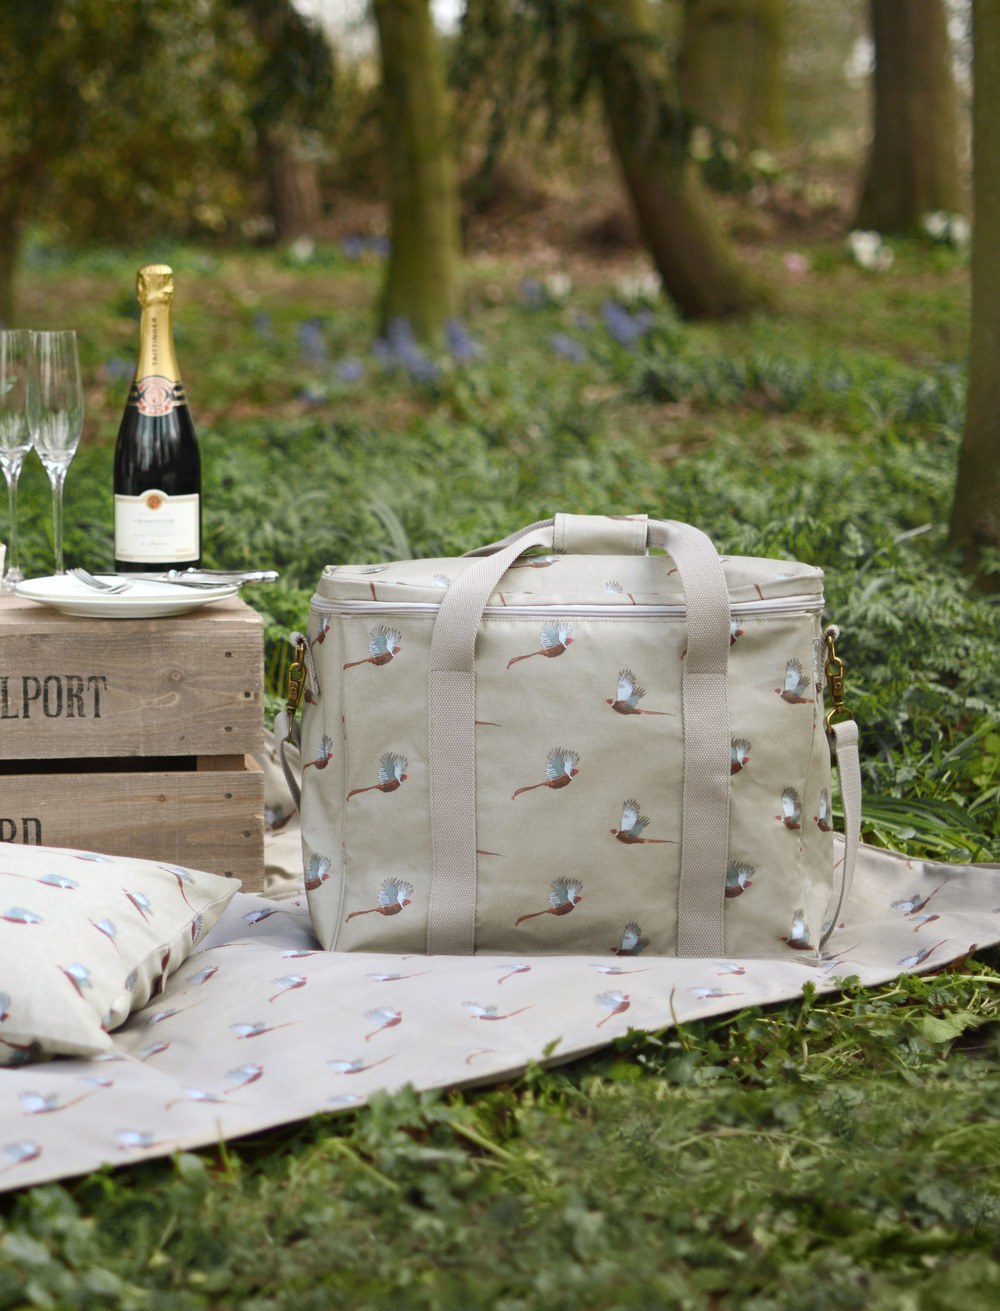 Summer houses for every budget, or that's out of reach, how about a picnic basket and blanket? Cheers!